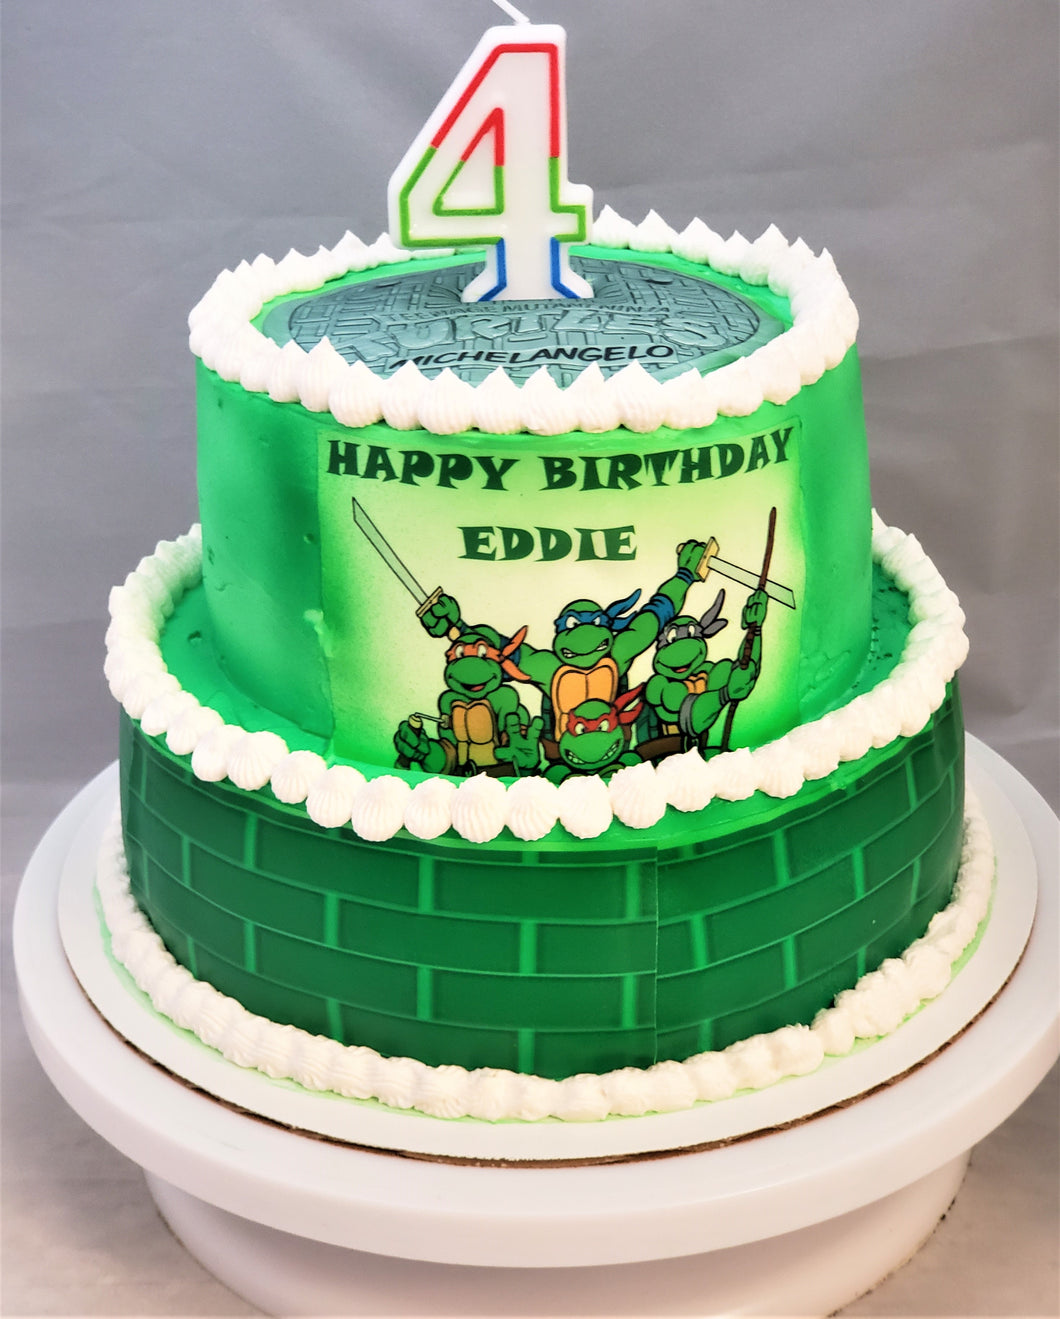 Surprising Teenage Mutant Ninja Turtle Birthday Cake Baked Cup Birthday Cards Printable Riciscafe Filternl